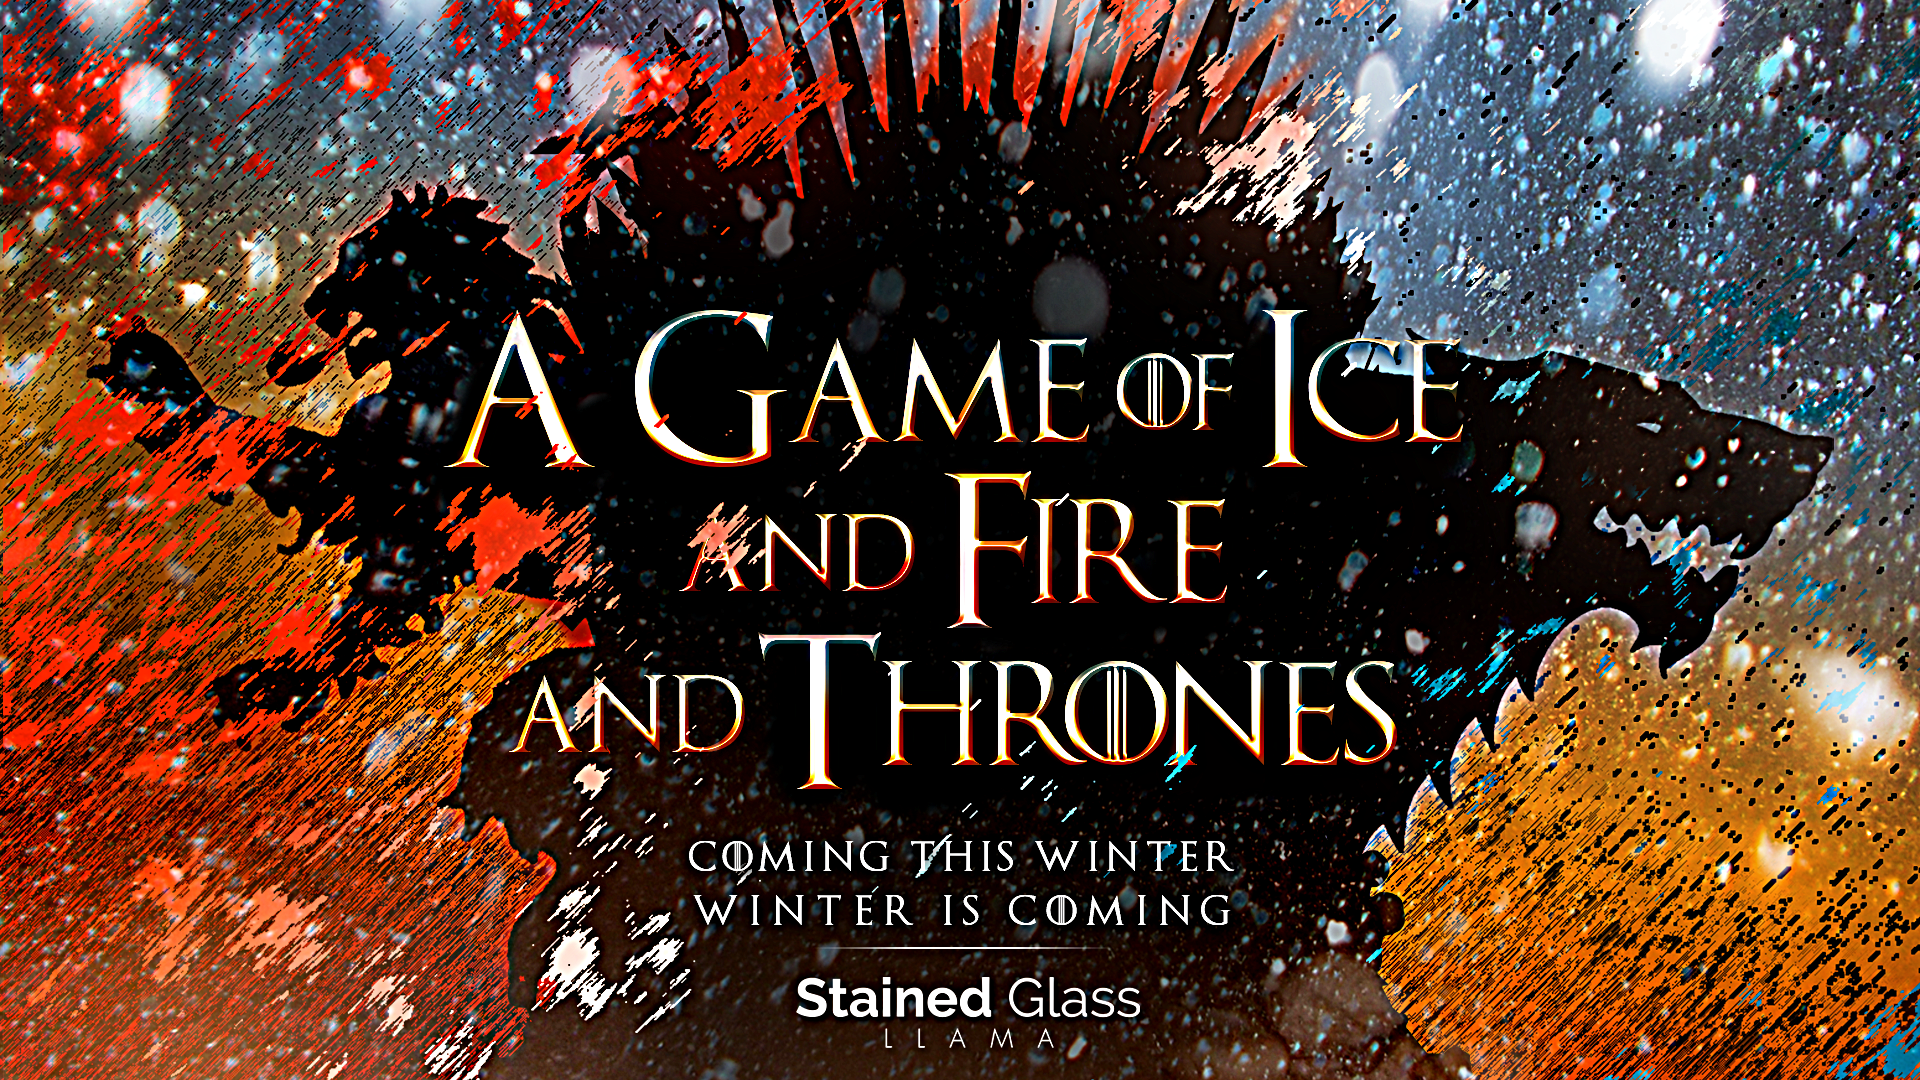 A Game of Ice and Fire and Thrones